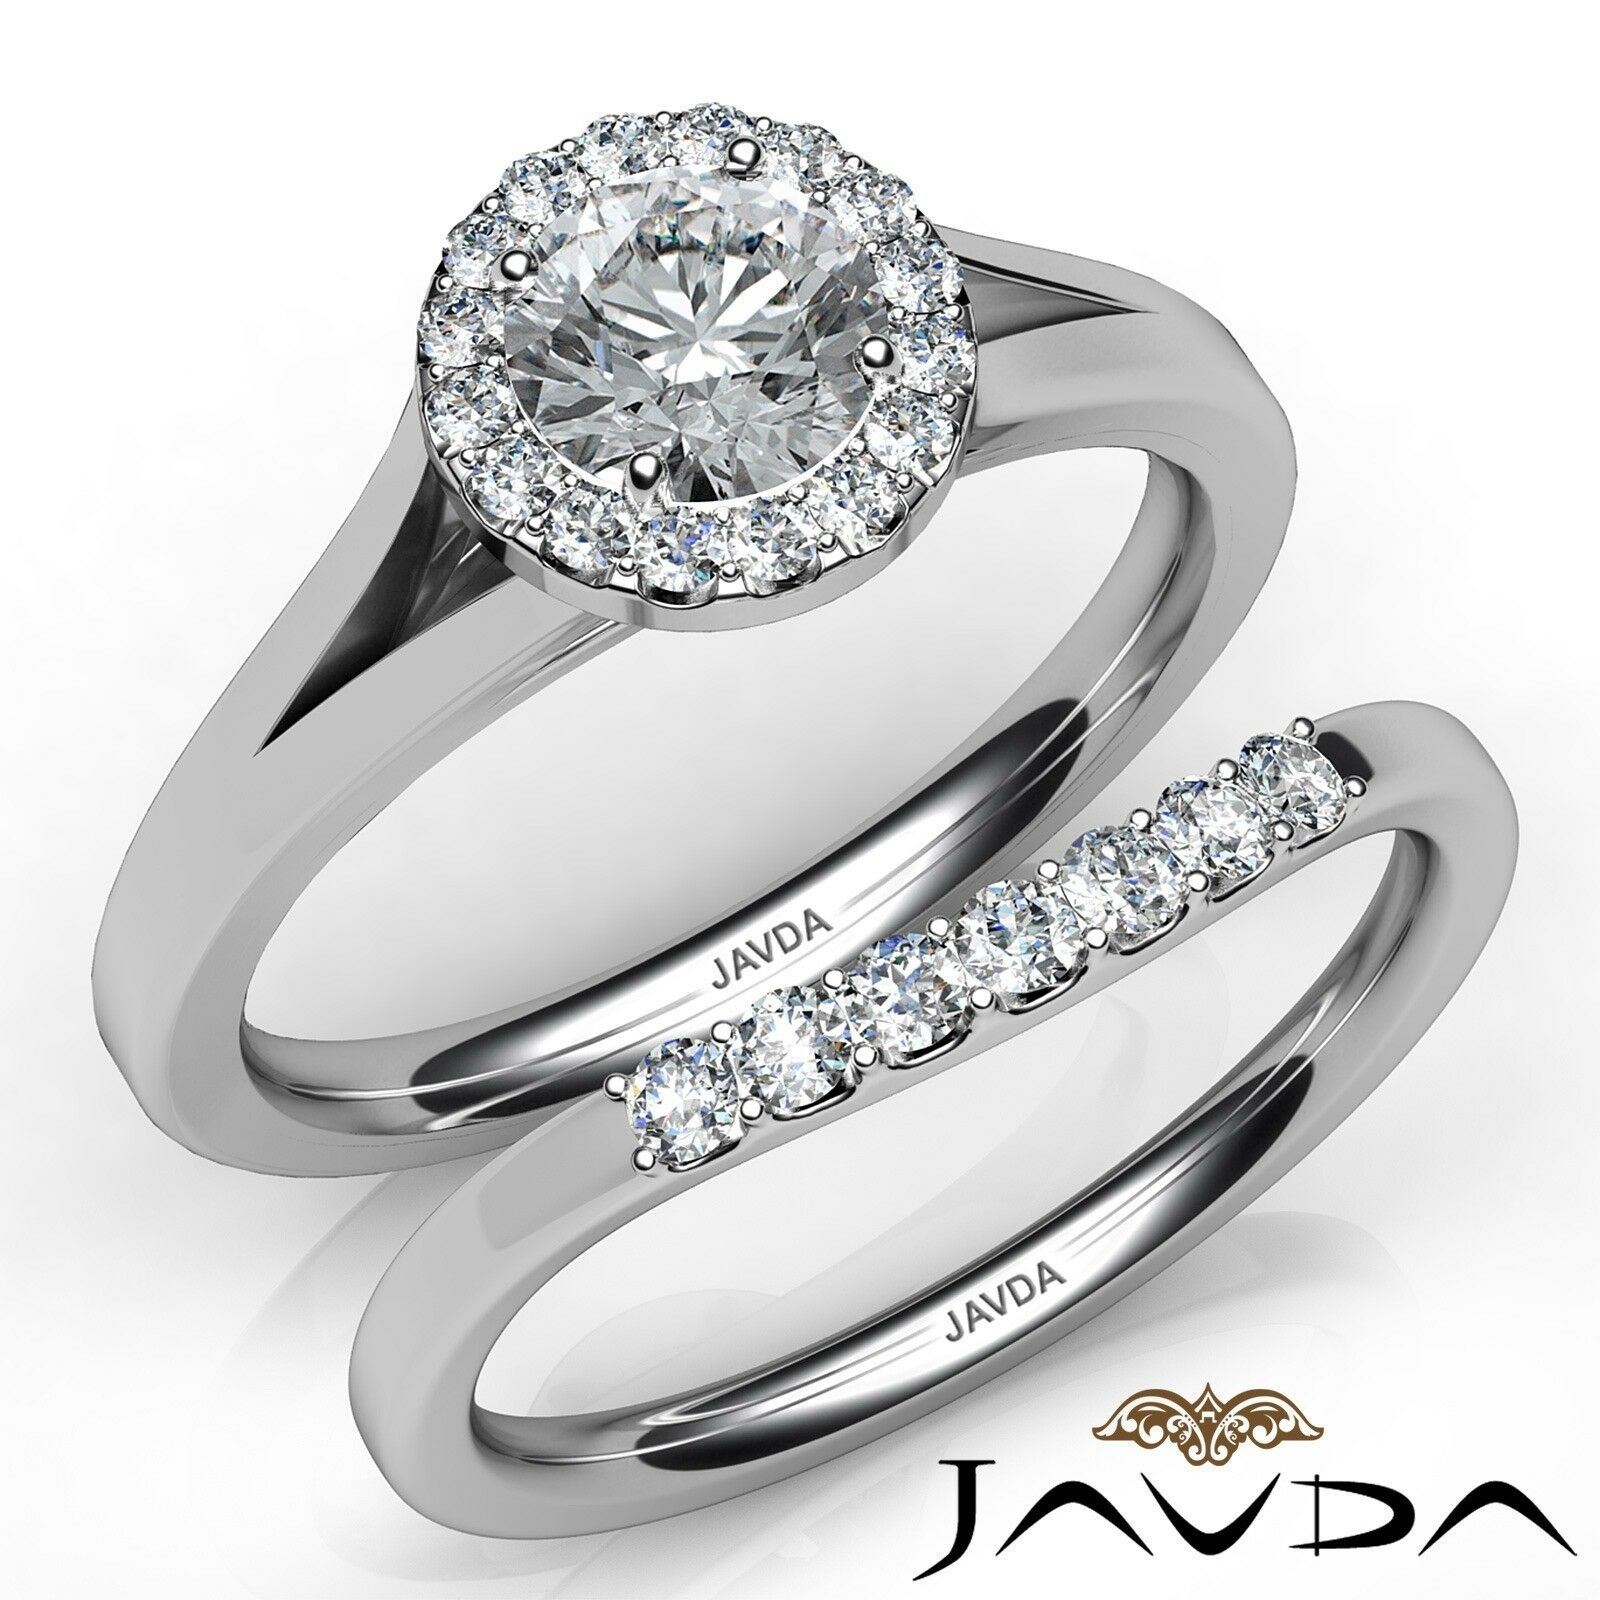 1.17ctw Classic Bridal Halo Pave Round Diamond Engagement Ring GIA E-VS2 W Gold